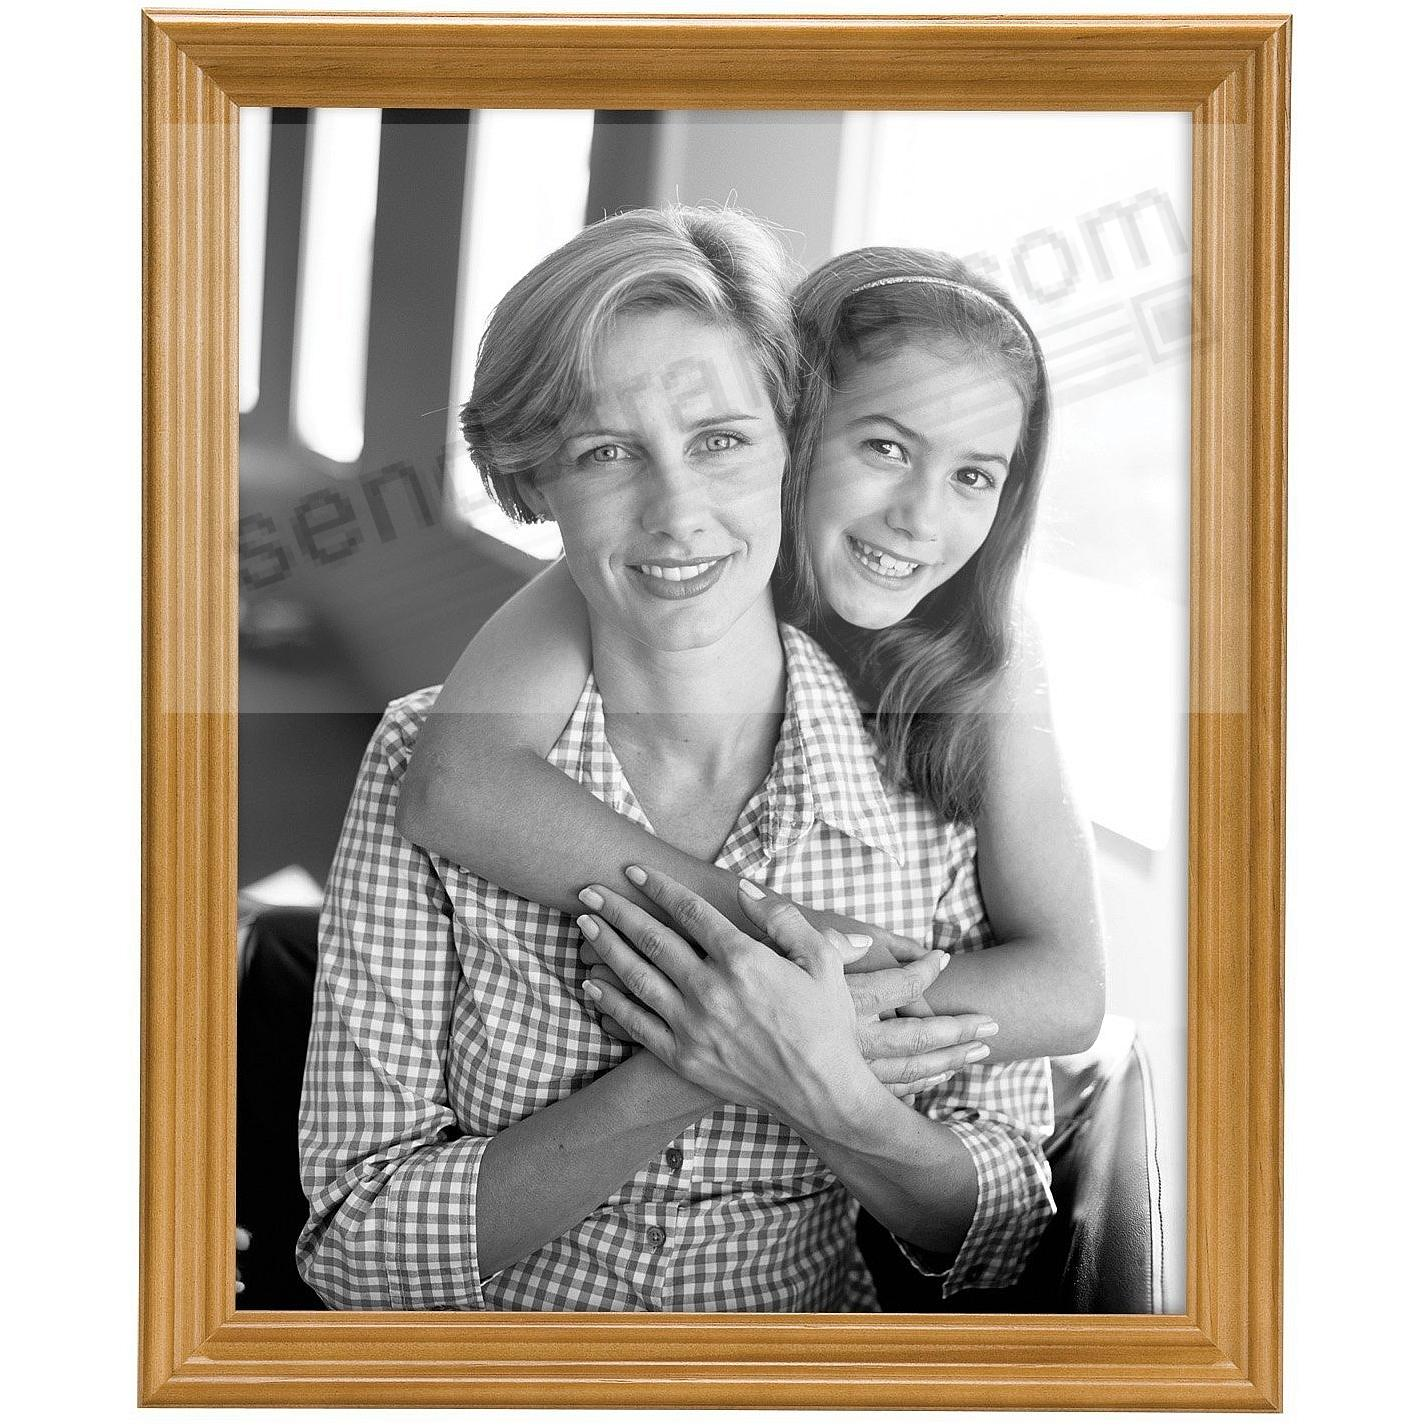 STYLE ONE OAK Solid Wood 5x7 frame from MCS®